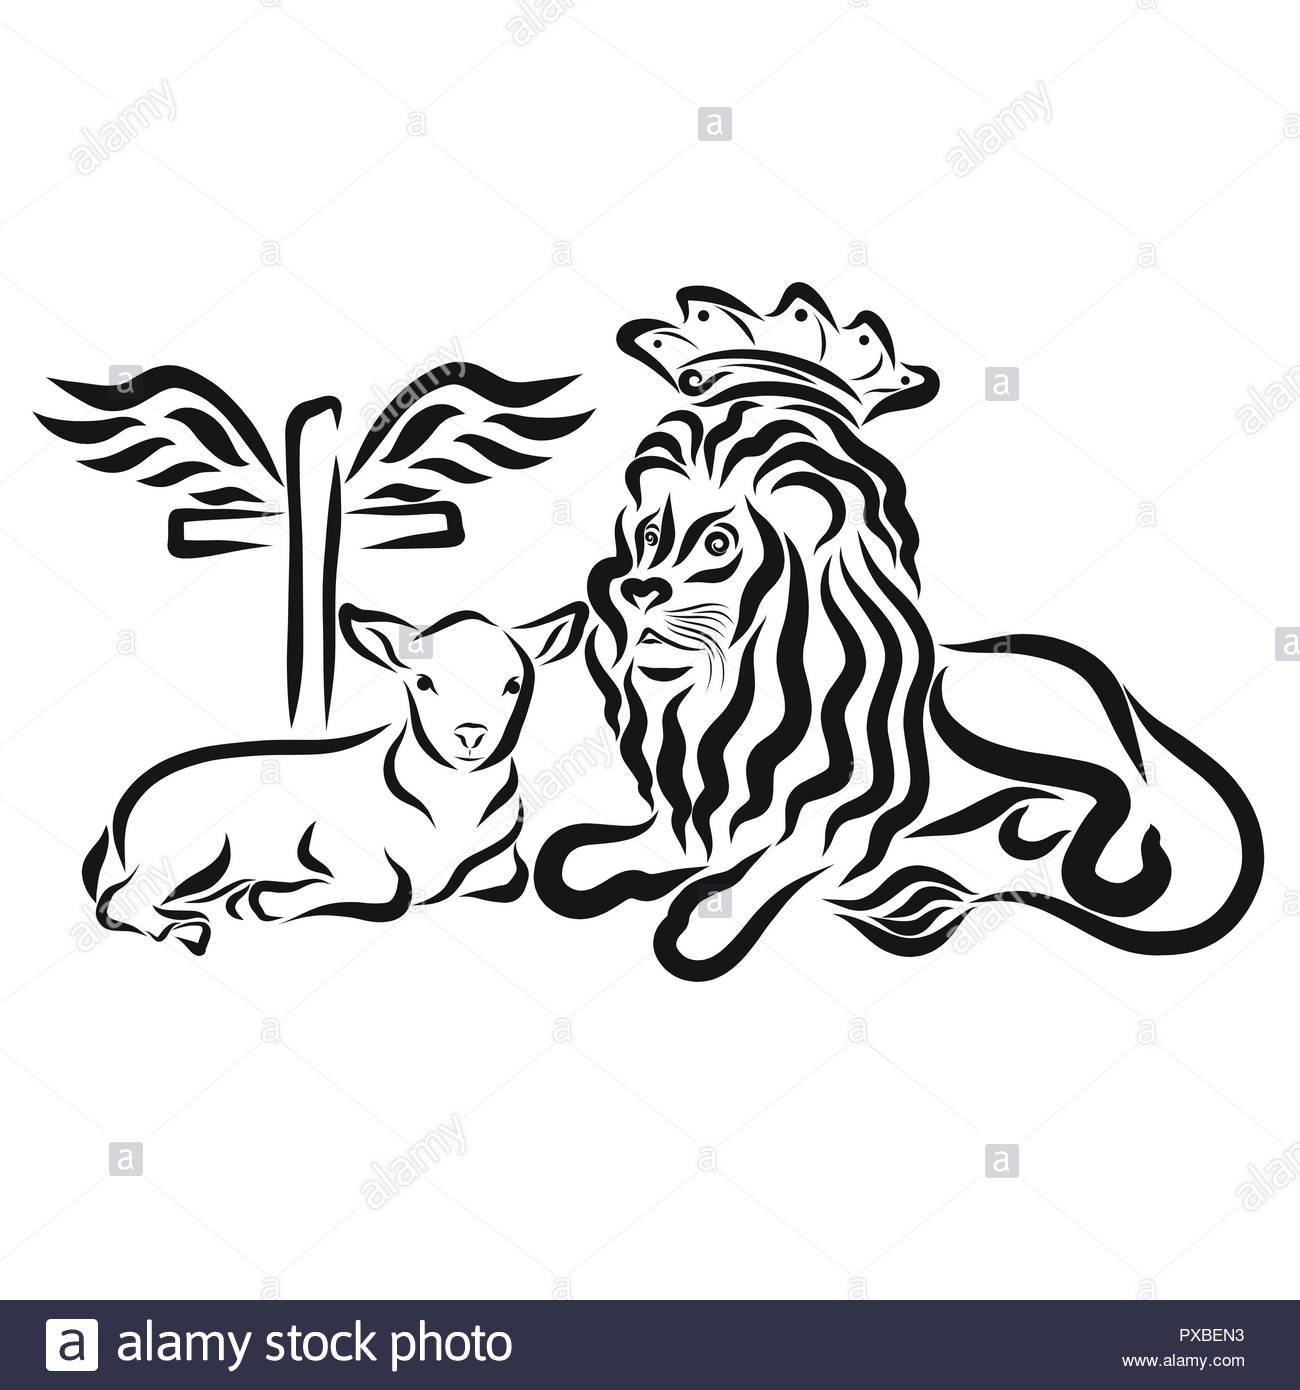 Humble Lamb And Lion King Cross With Wings Sacrifice And Victory